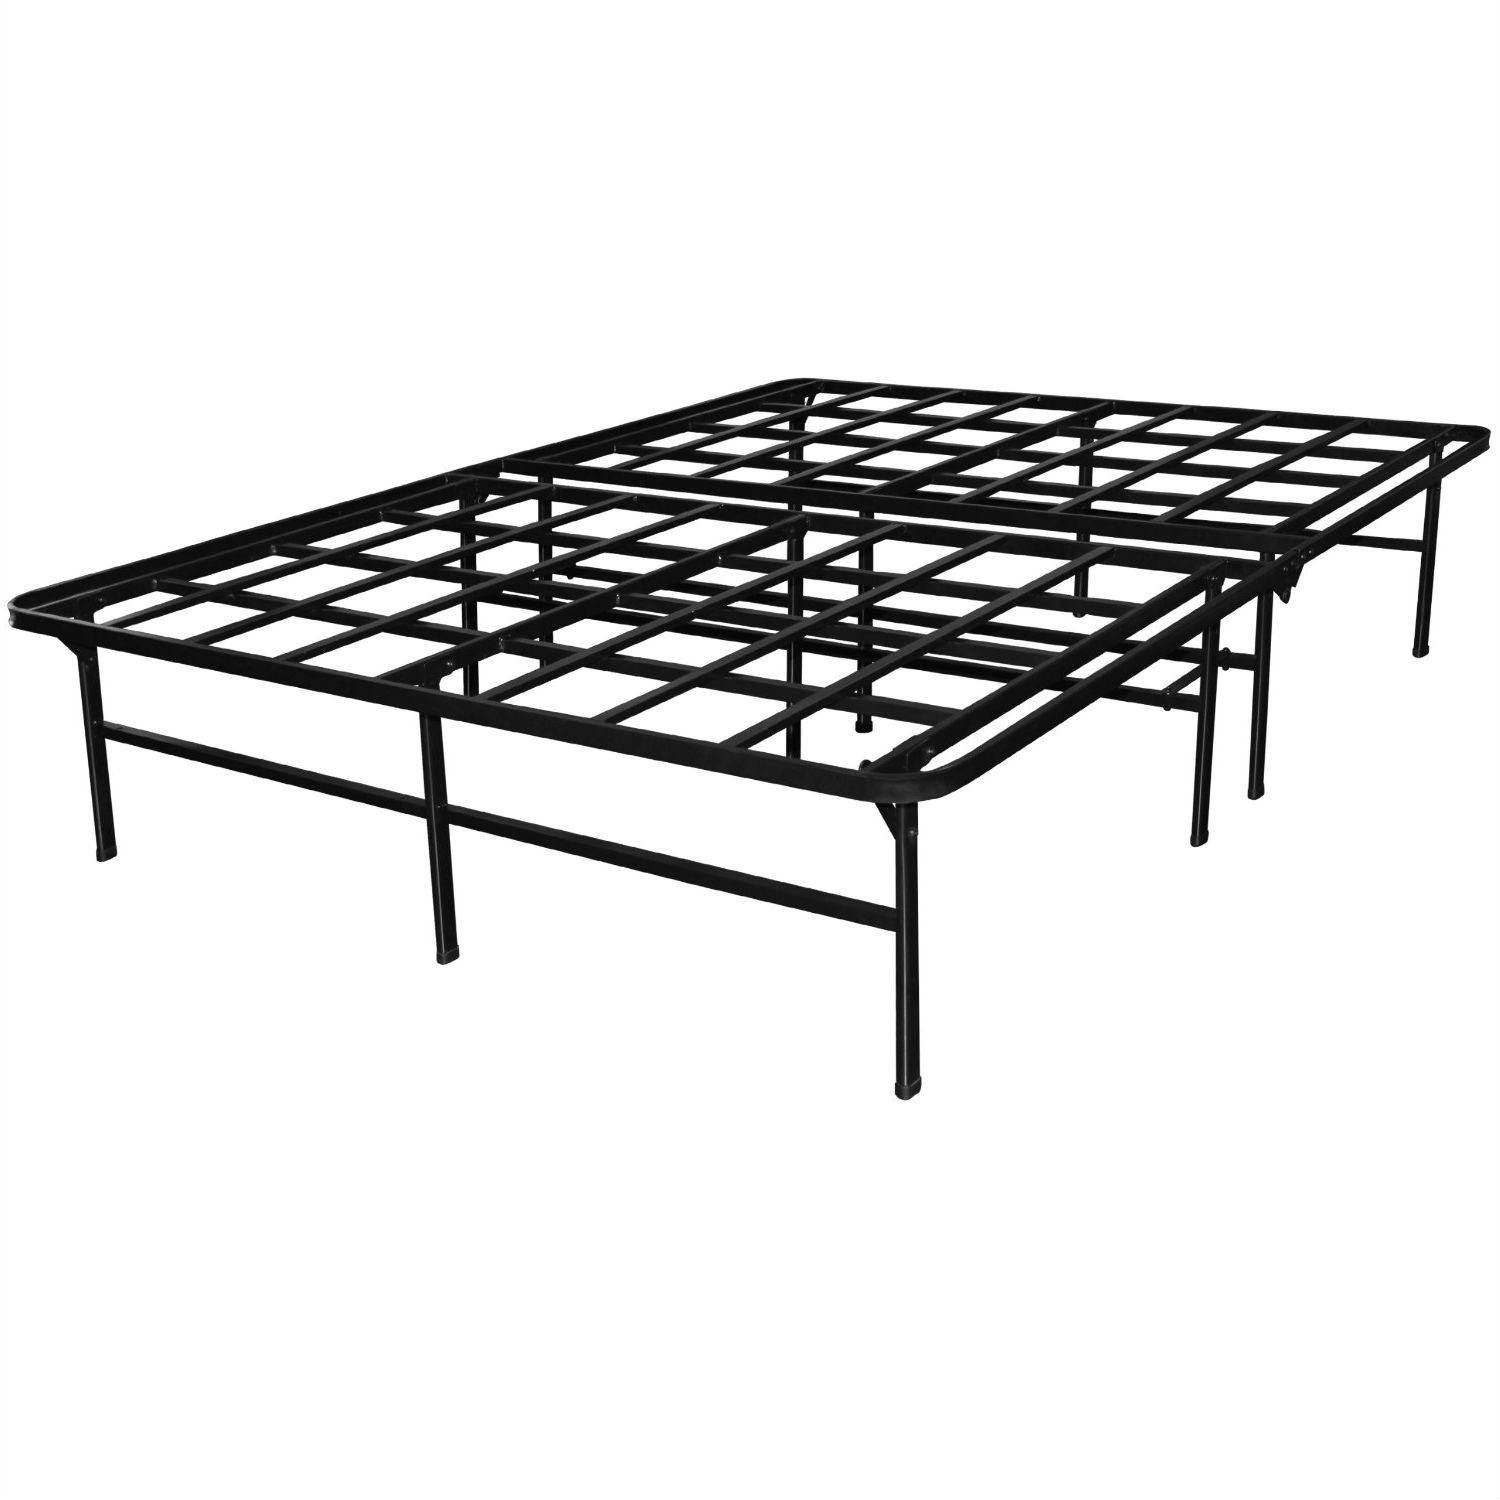 Queen Size Heavy Duty Metal Platform Bed Frame